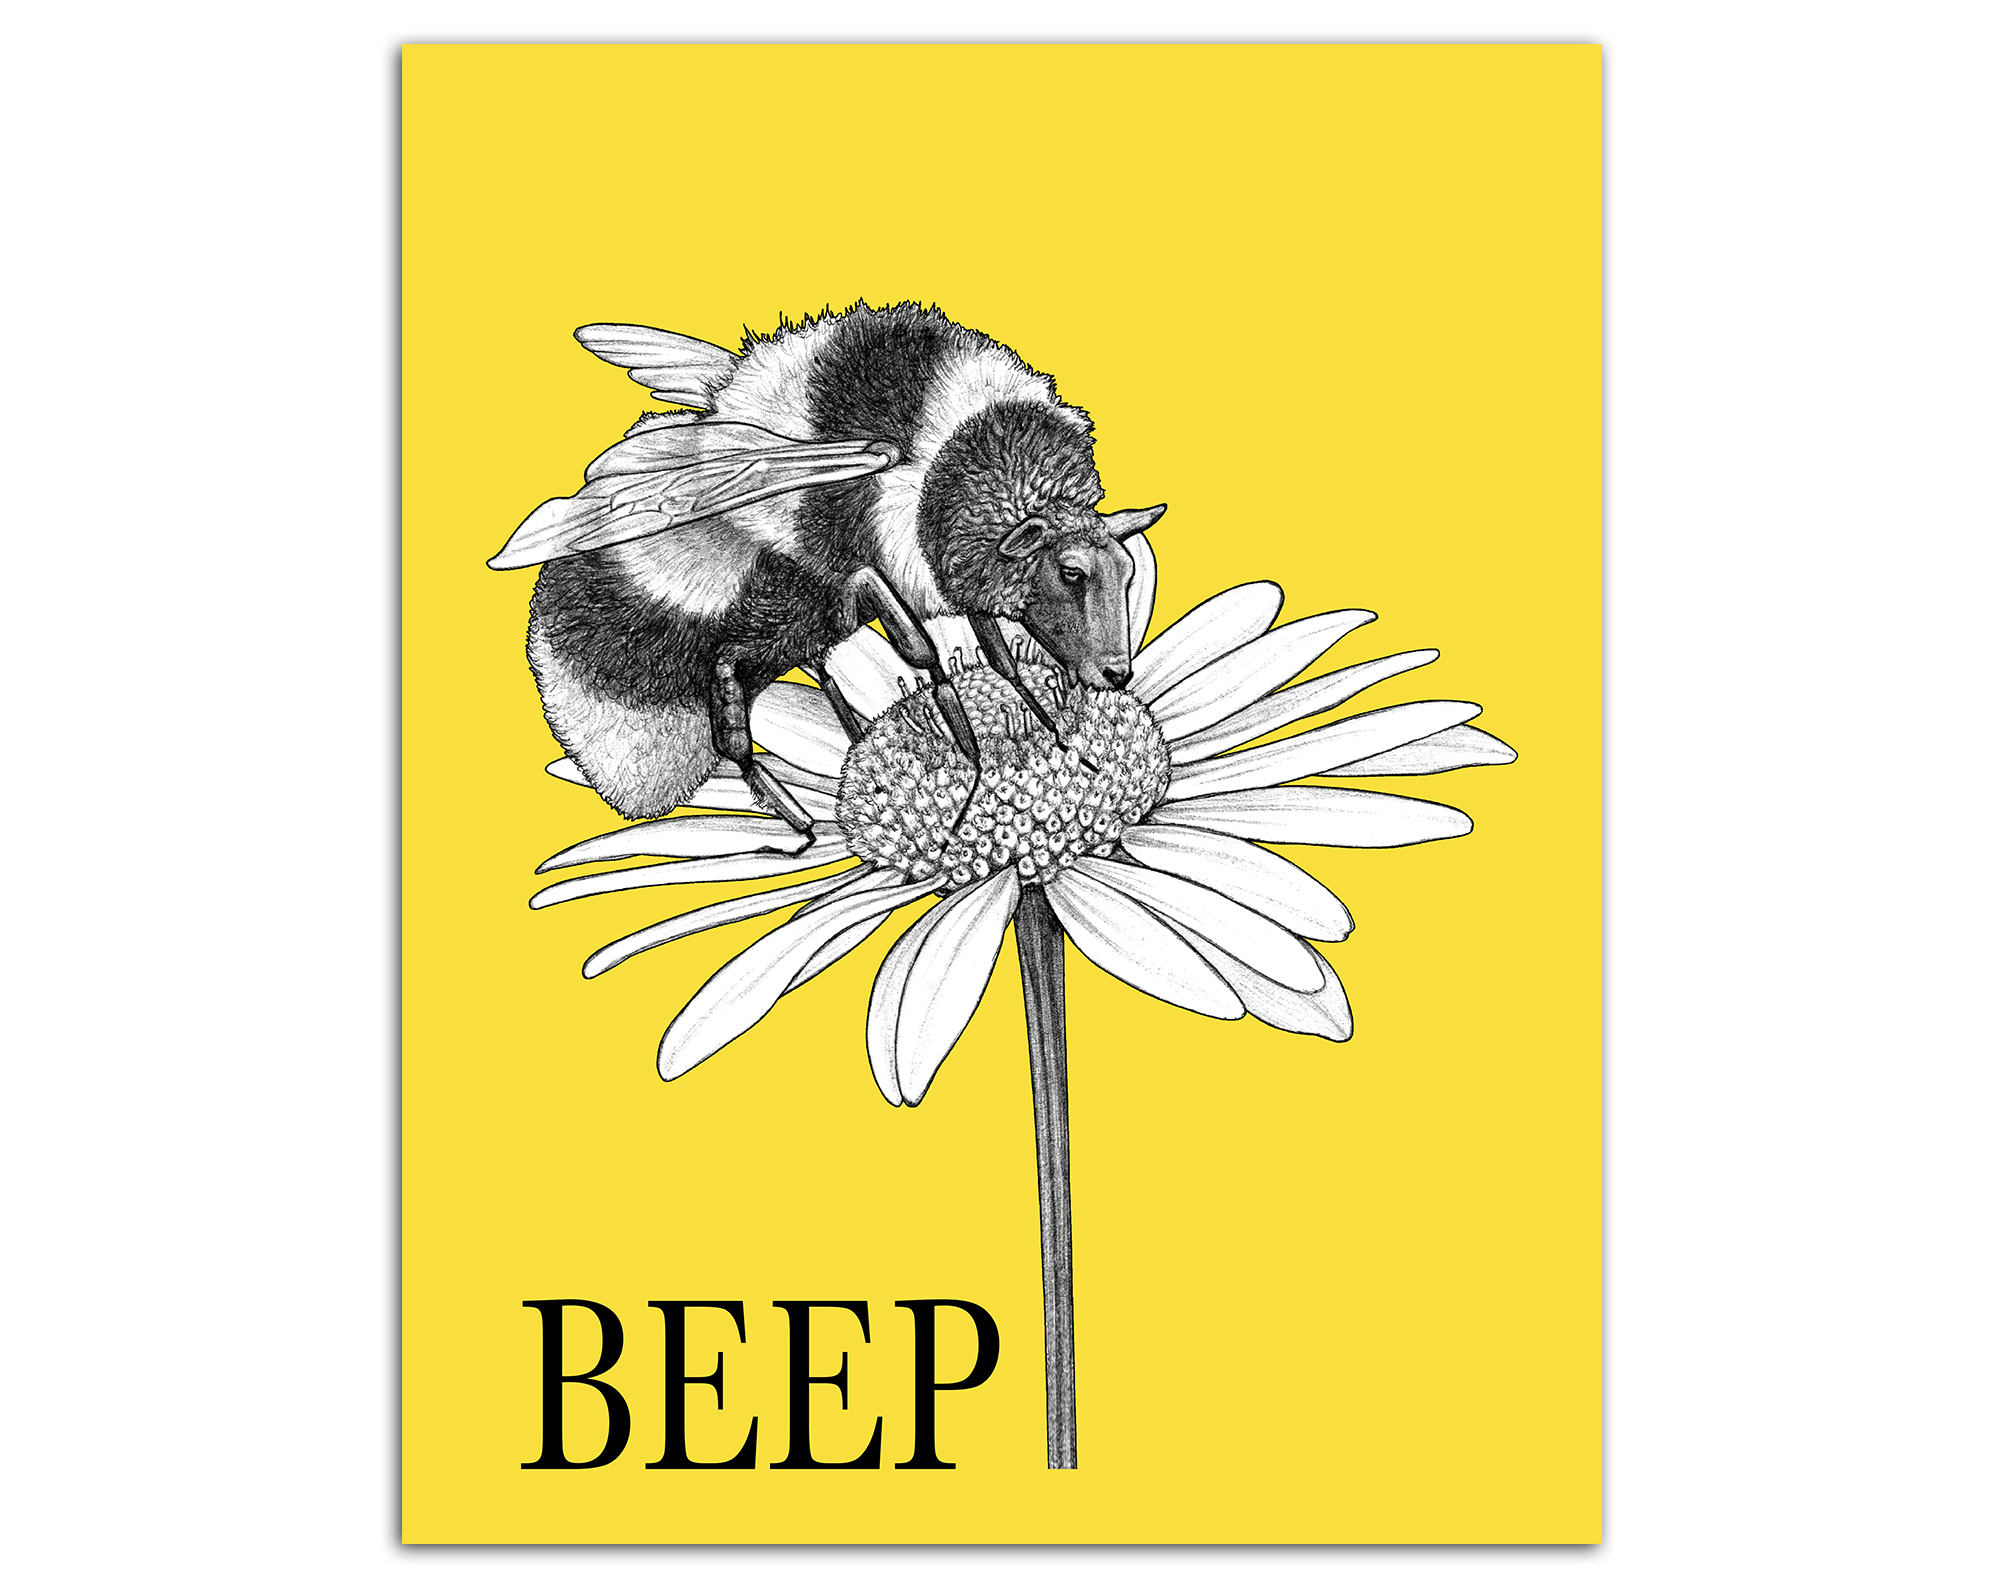 Beep 8x10 Art Print Bee Sheep Hybrid Animal Cute Bumble | Etsy